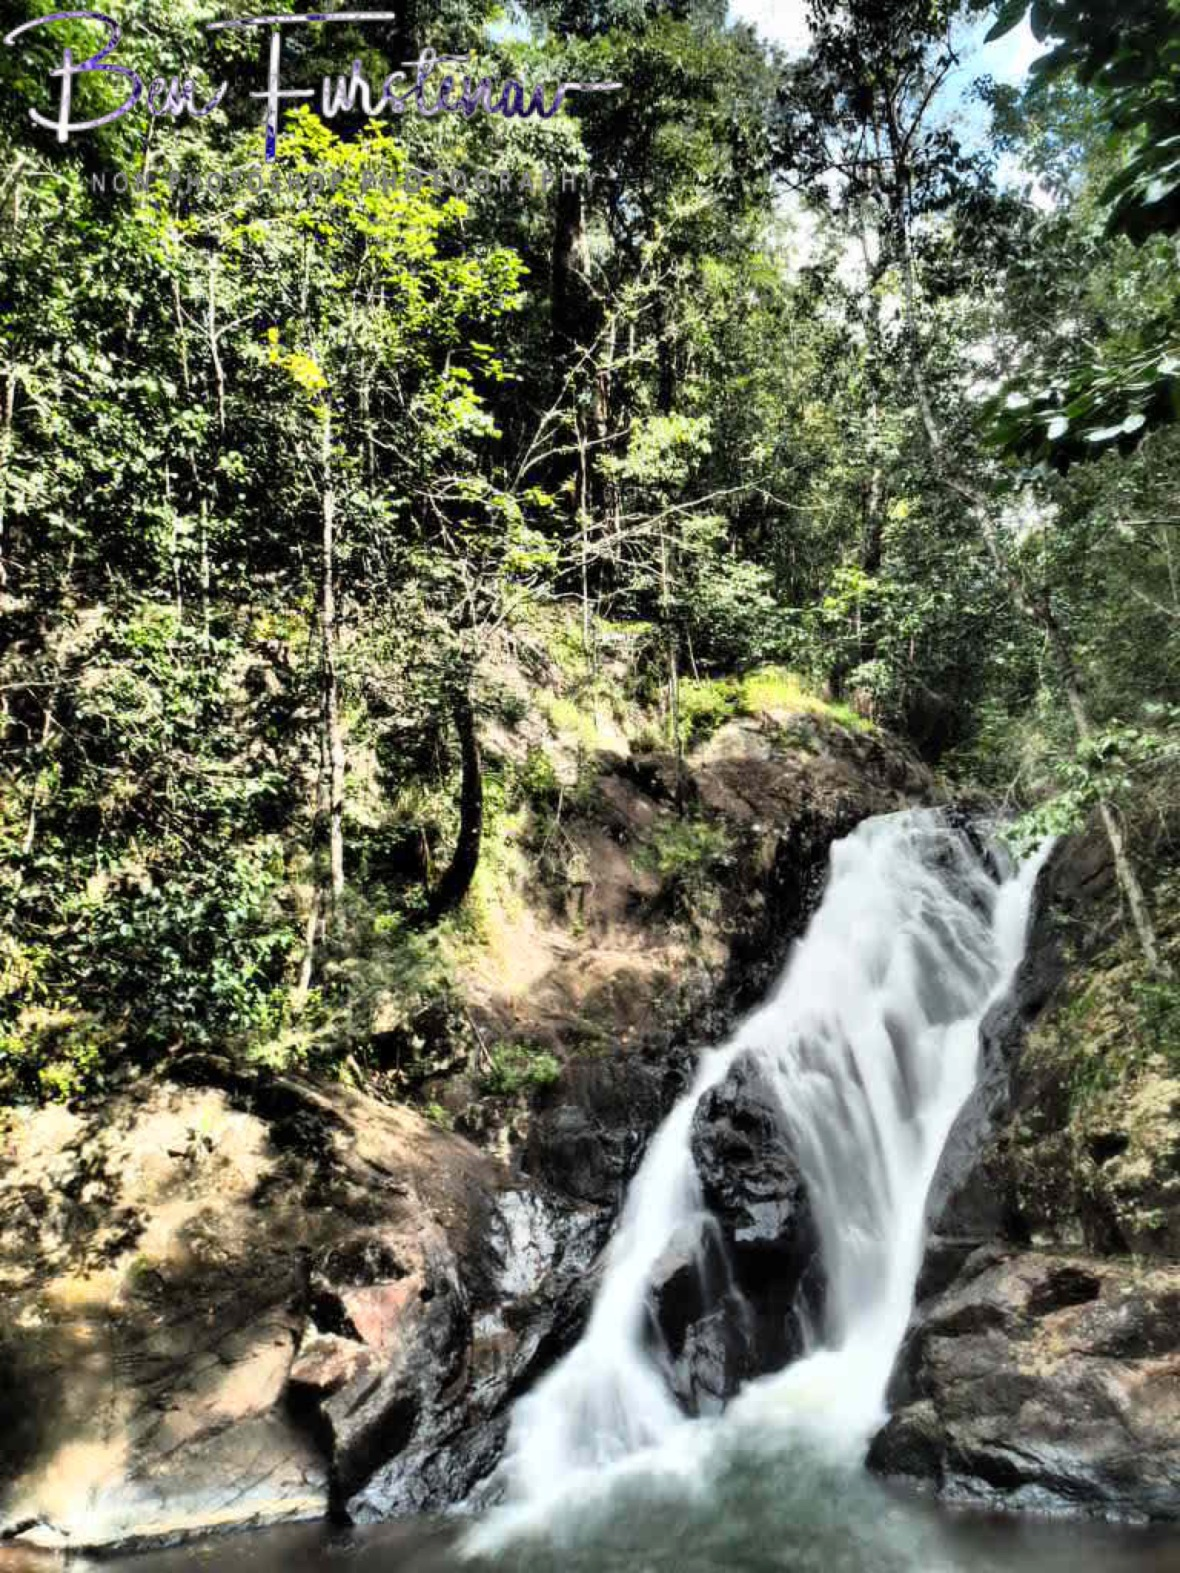 Waterfall on the knife's edge in Atherton Tablelands, Far North Queensland, Australia